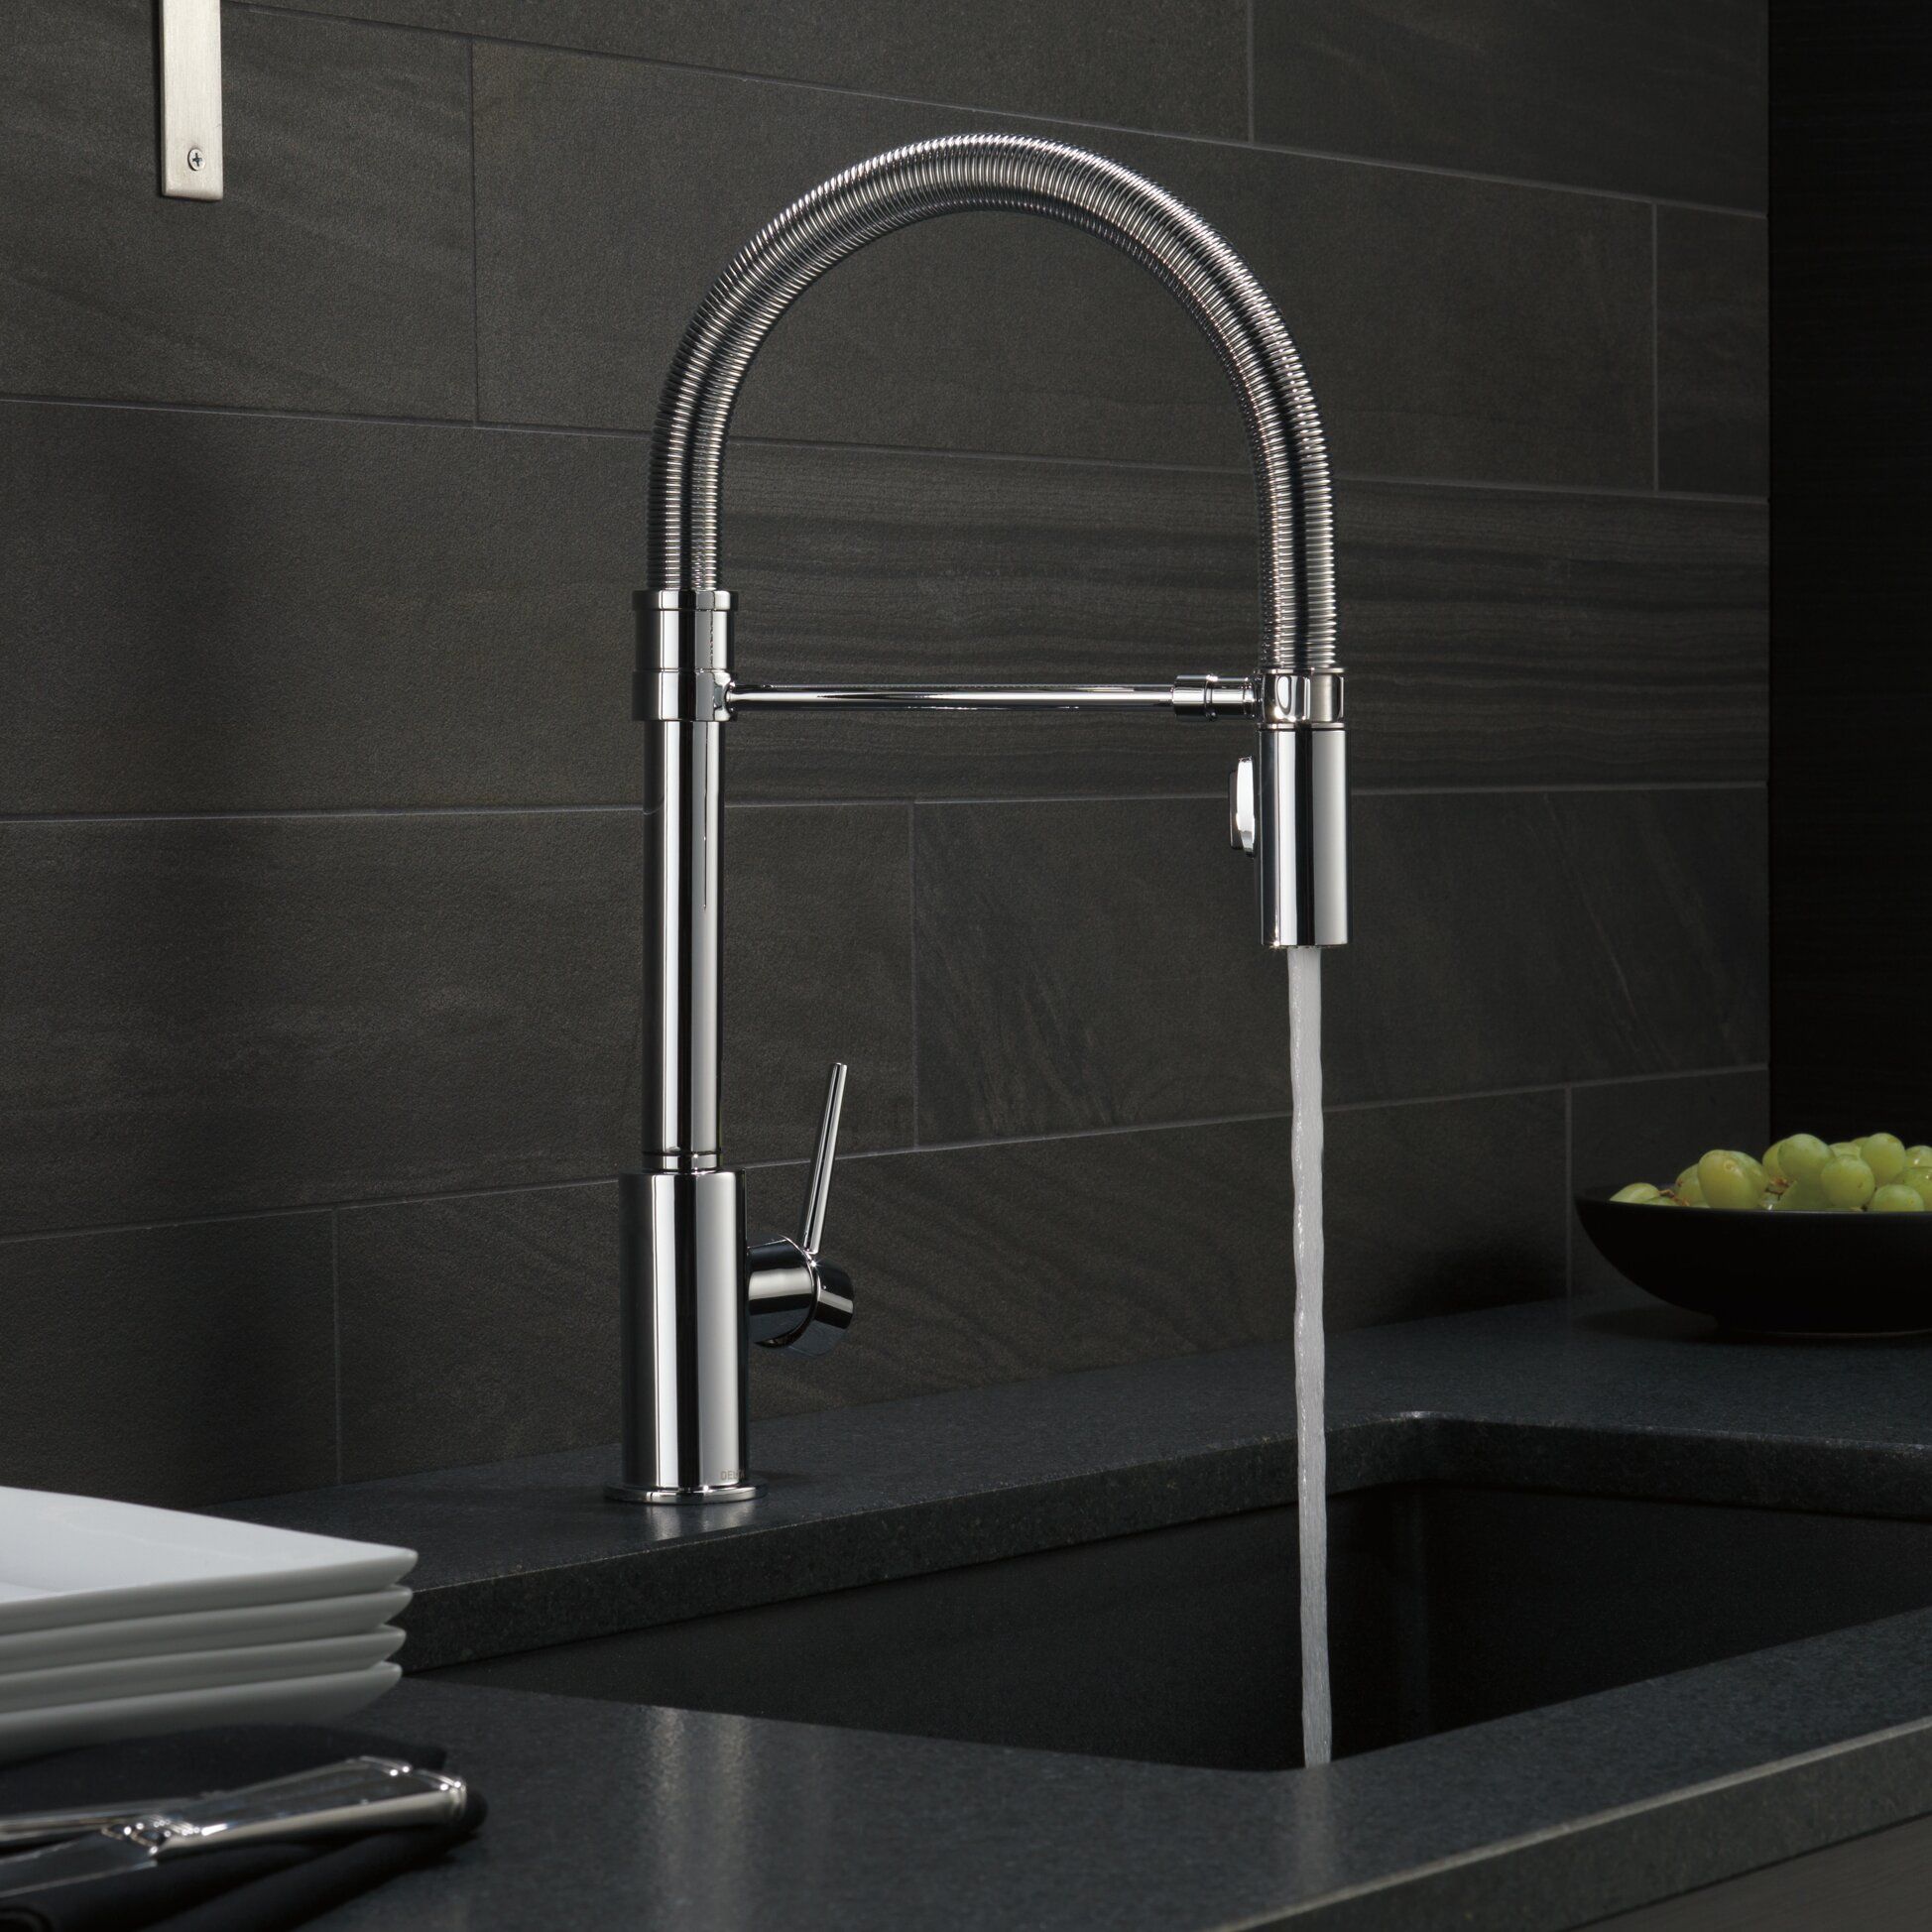 Delta Kitchen Faucet Reviews Trinsic Single Handle Pull Down Kitchen Faucet With Spring Spout